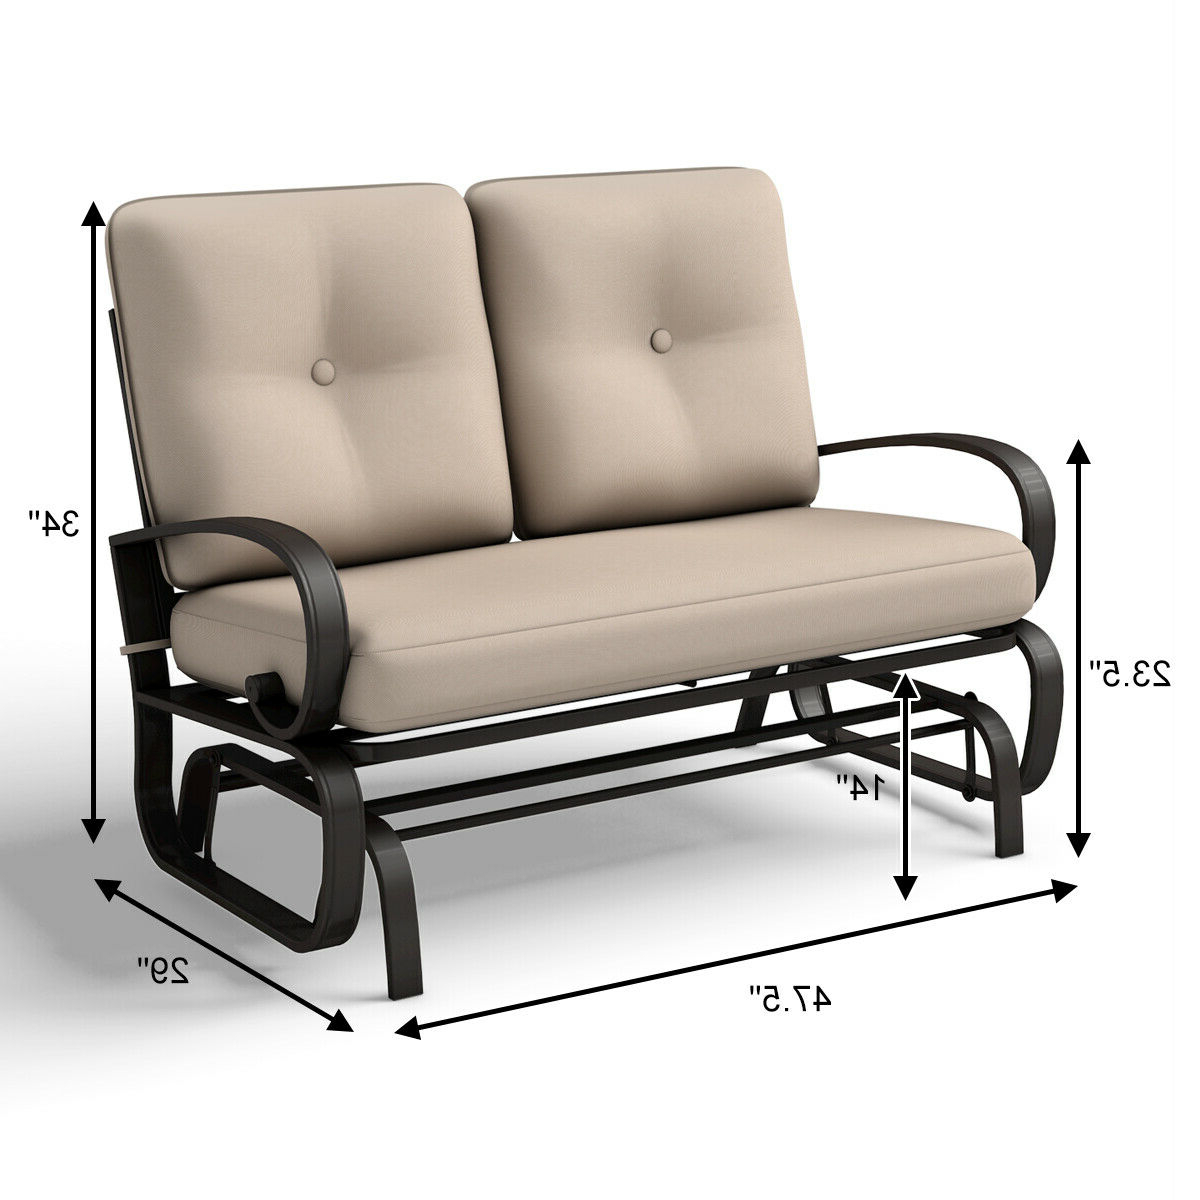 Most Up To Date Costway Glider Outdoor Patio Rocking Bench Loveseat For 1 Person Antique Black Steel Outdoor Gliders (Gallery 25 of 25)